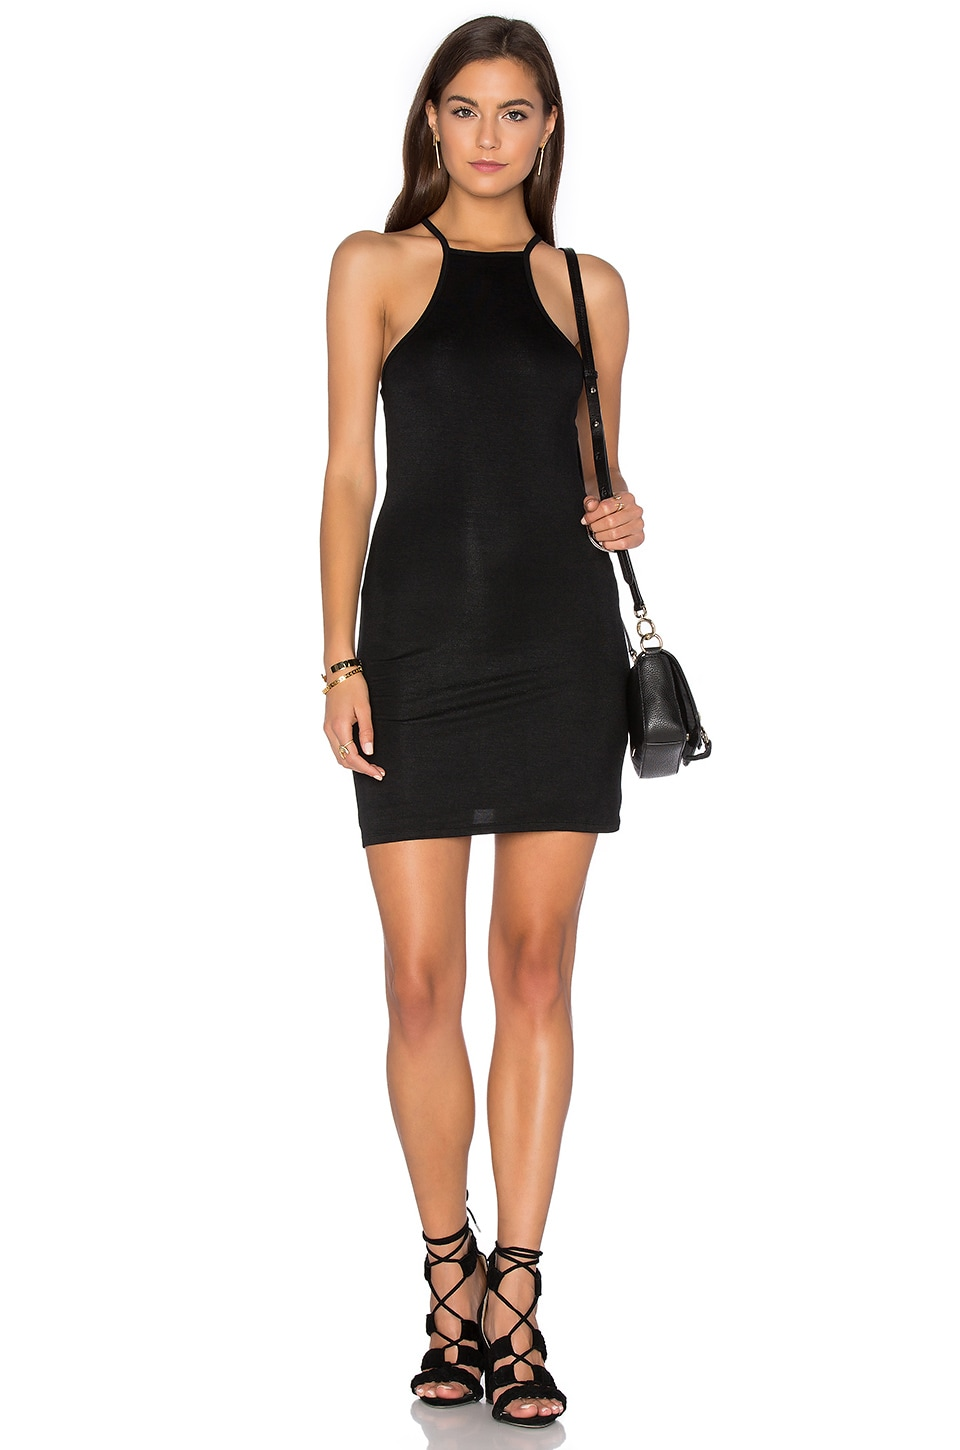 High Neck Tank Dress by Blq Basiq